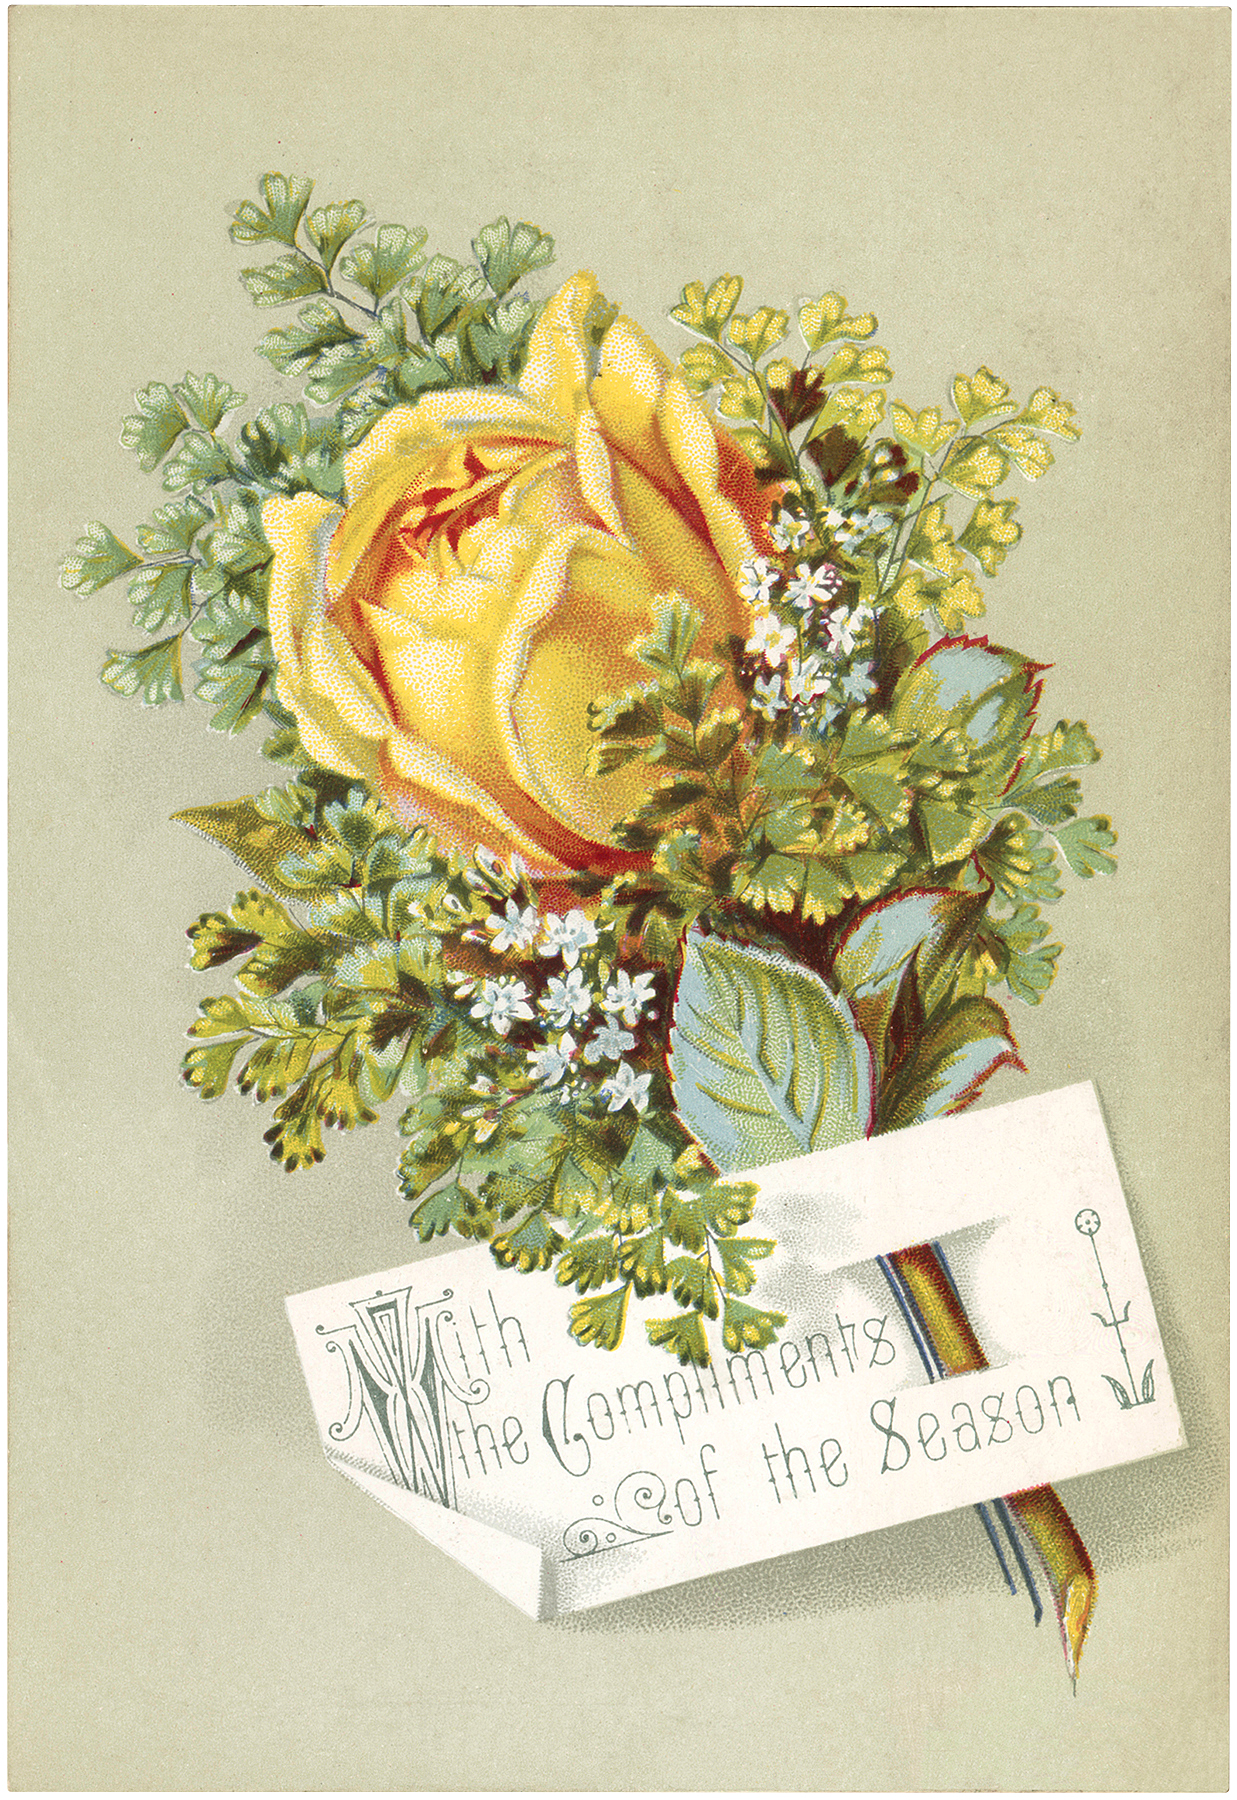 Vintage Yellow Rose Image The Graphics Fairy